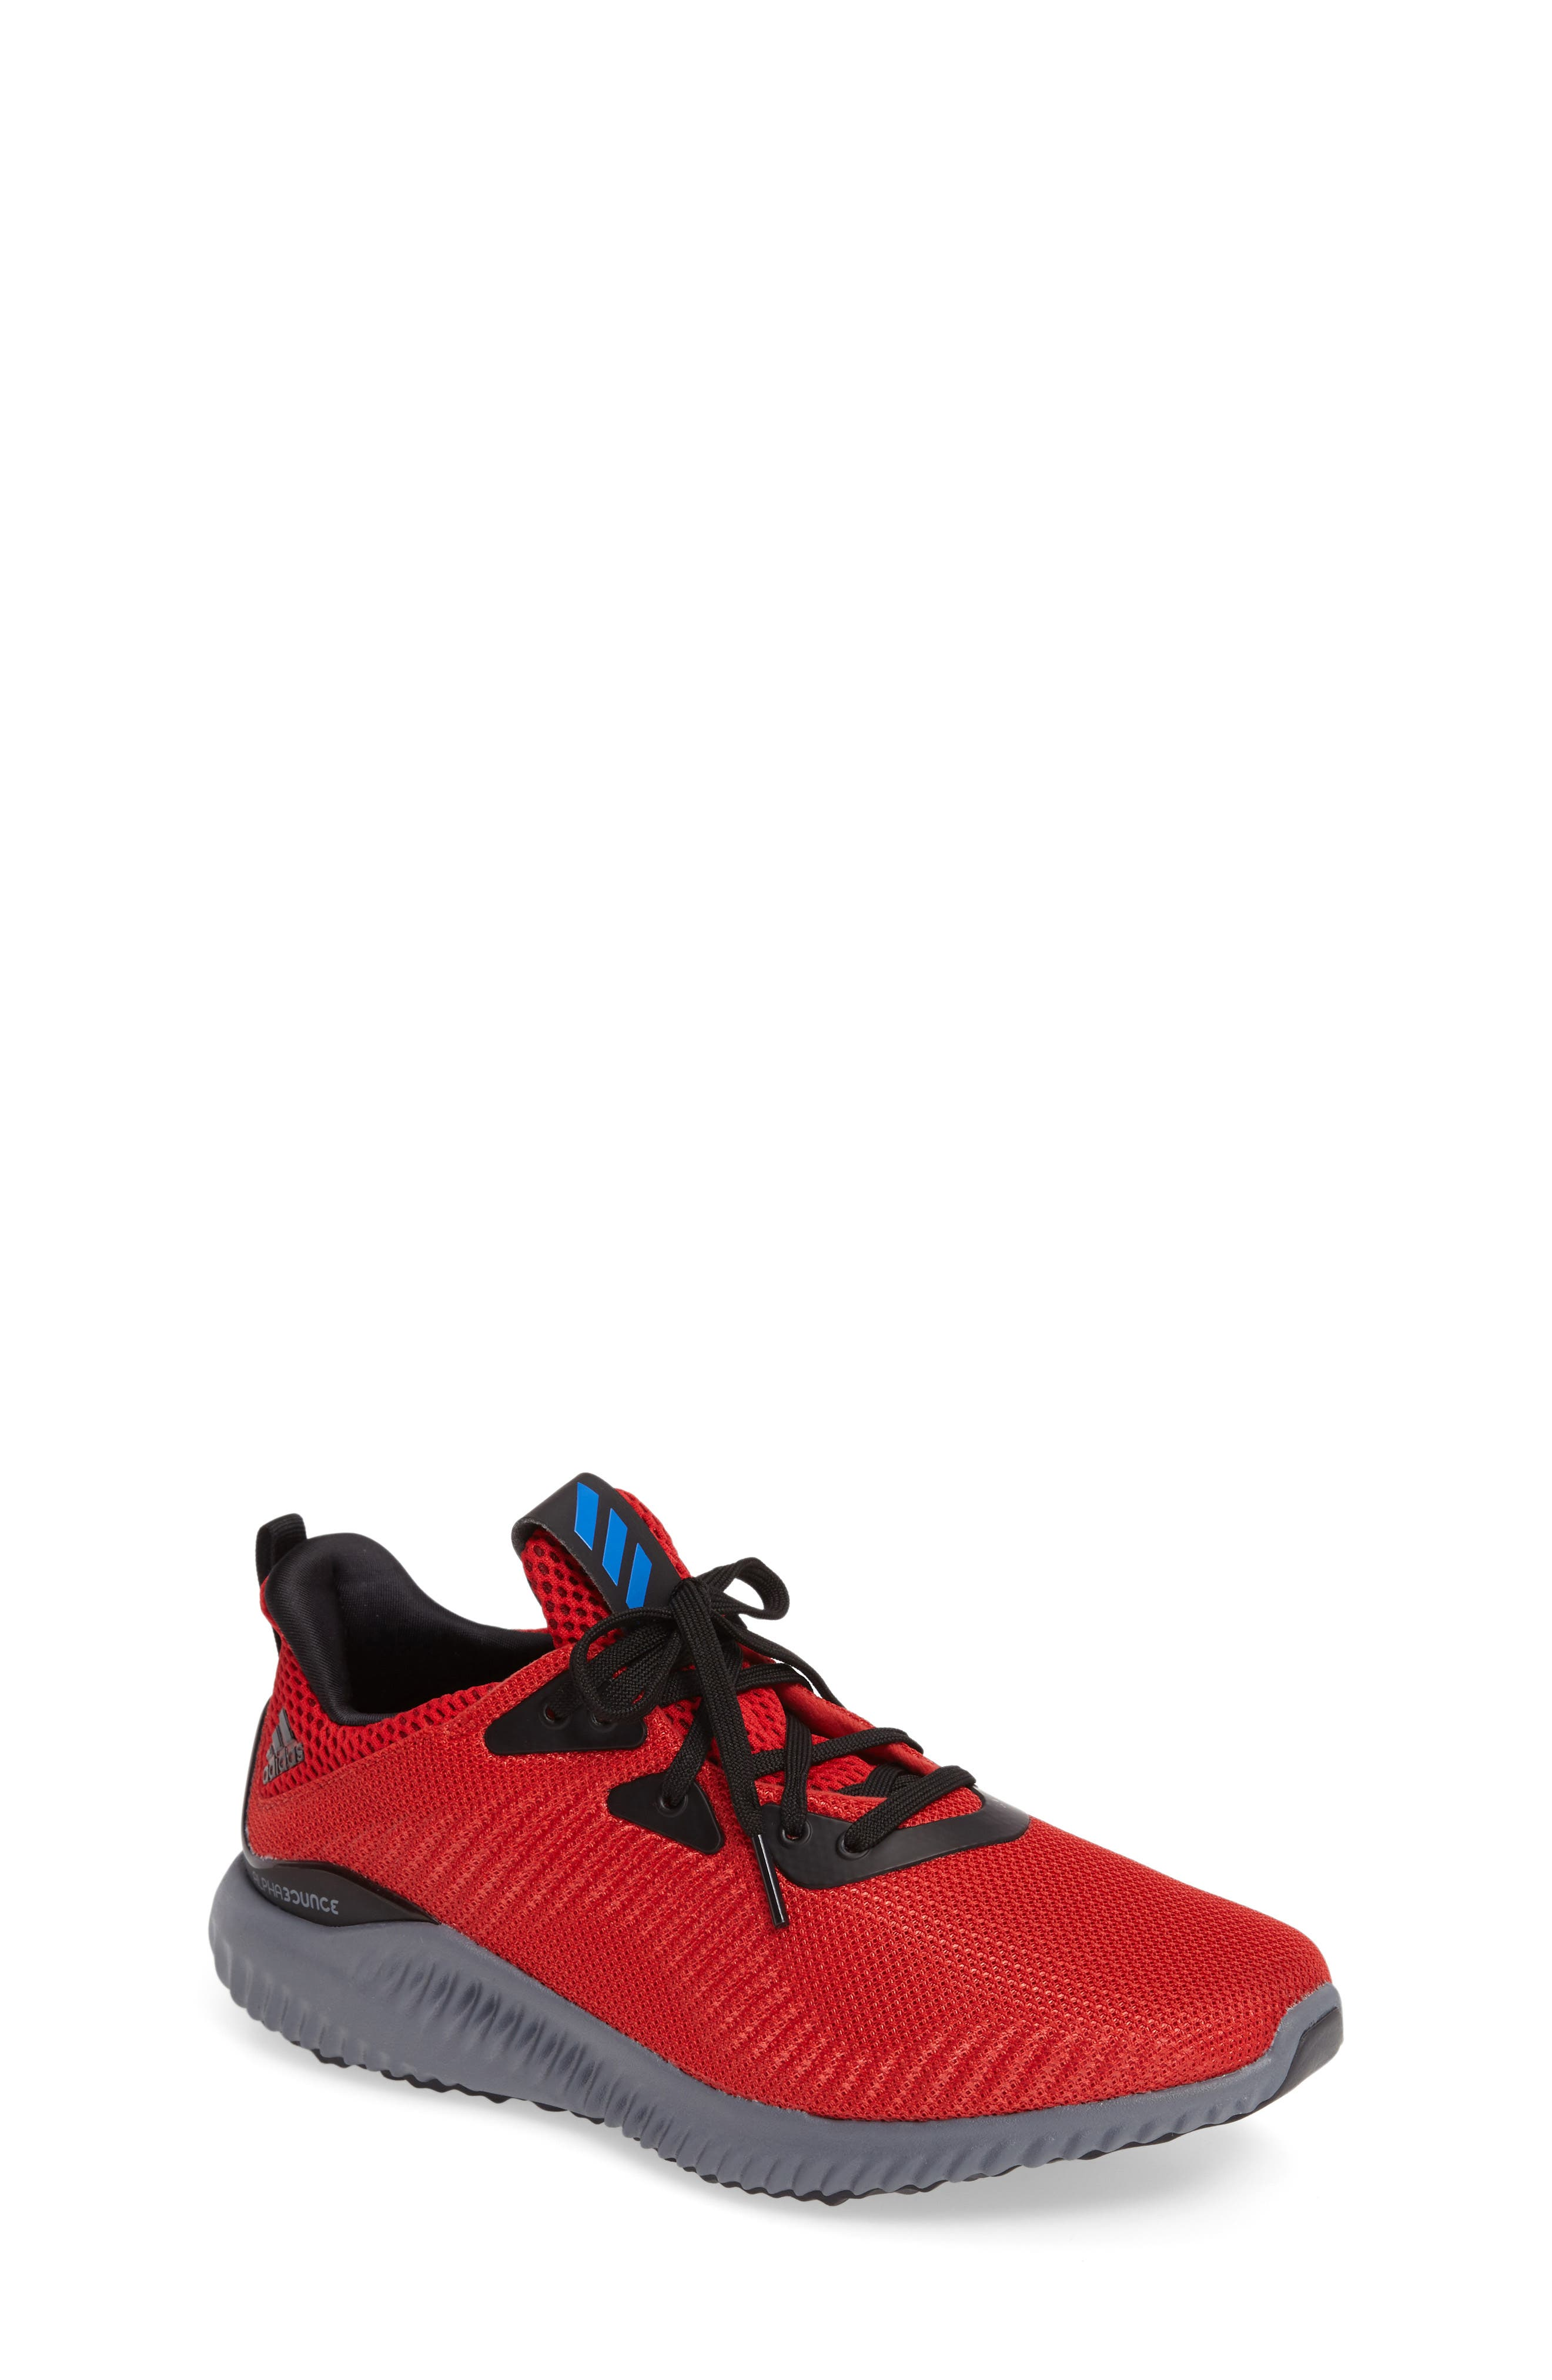 adidas AlphaBOUNCE Sneaker (Toddler, Little Kid & Big Kid)